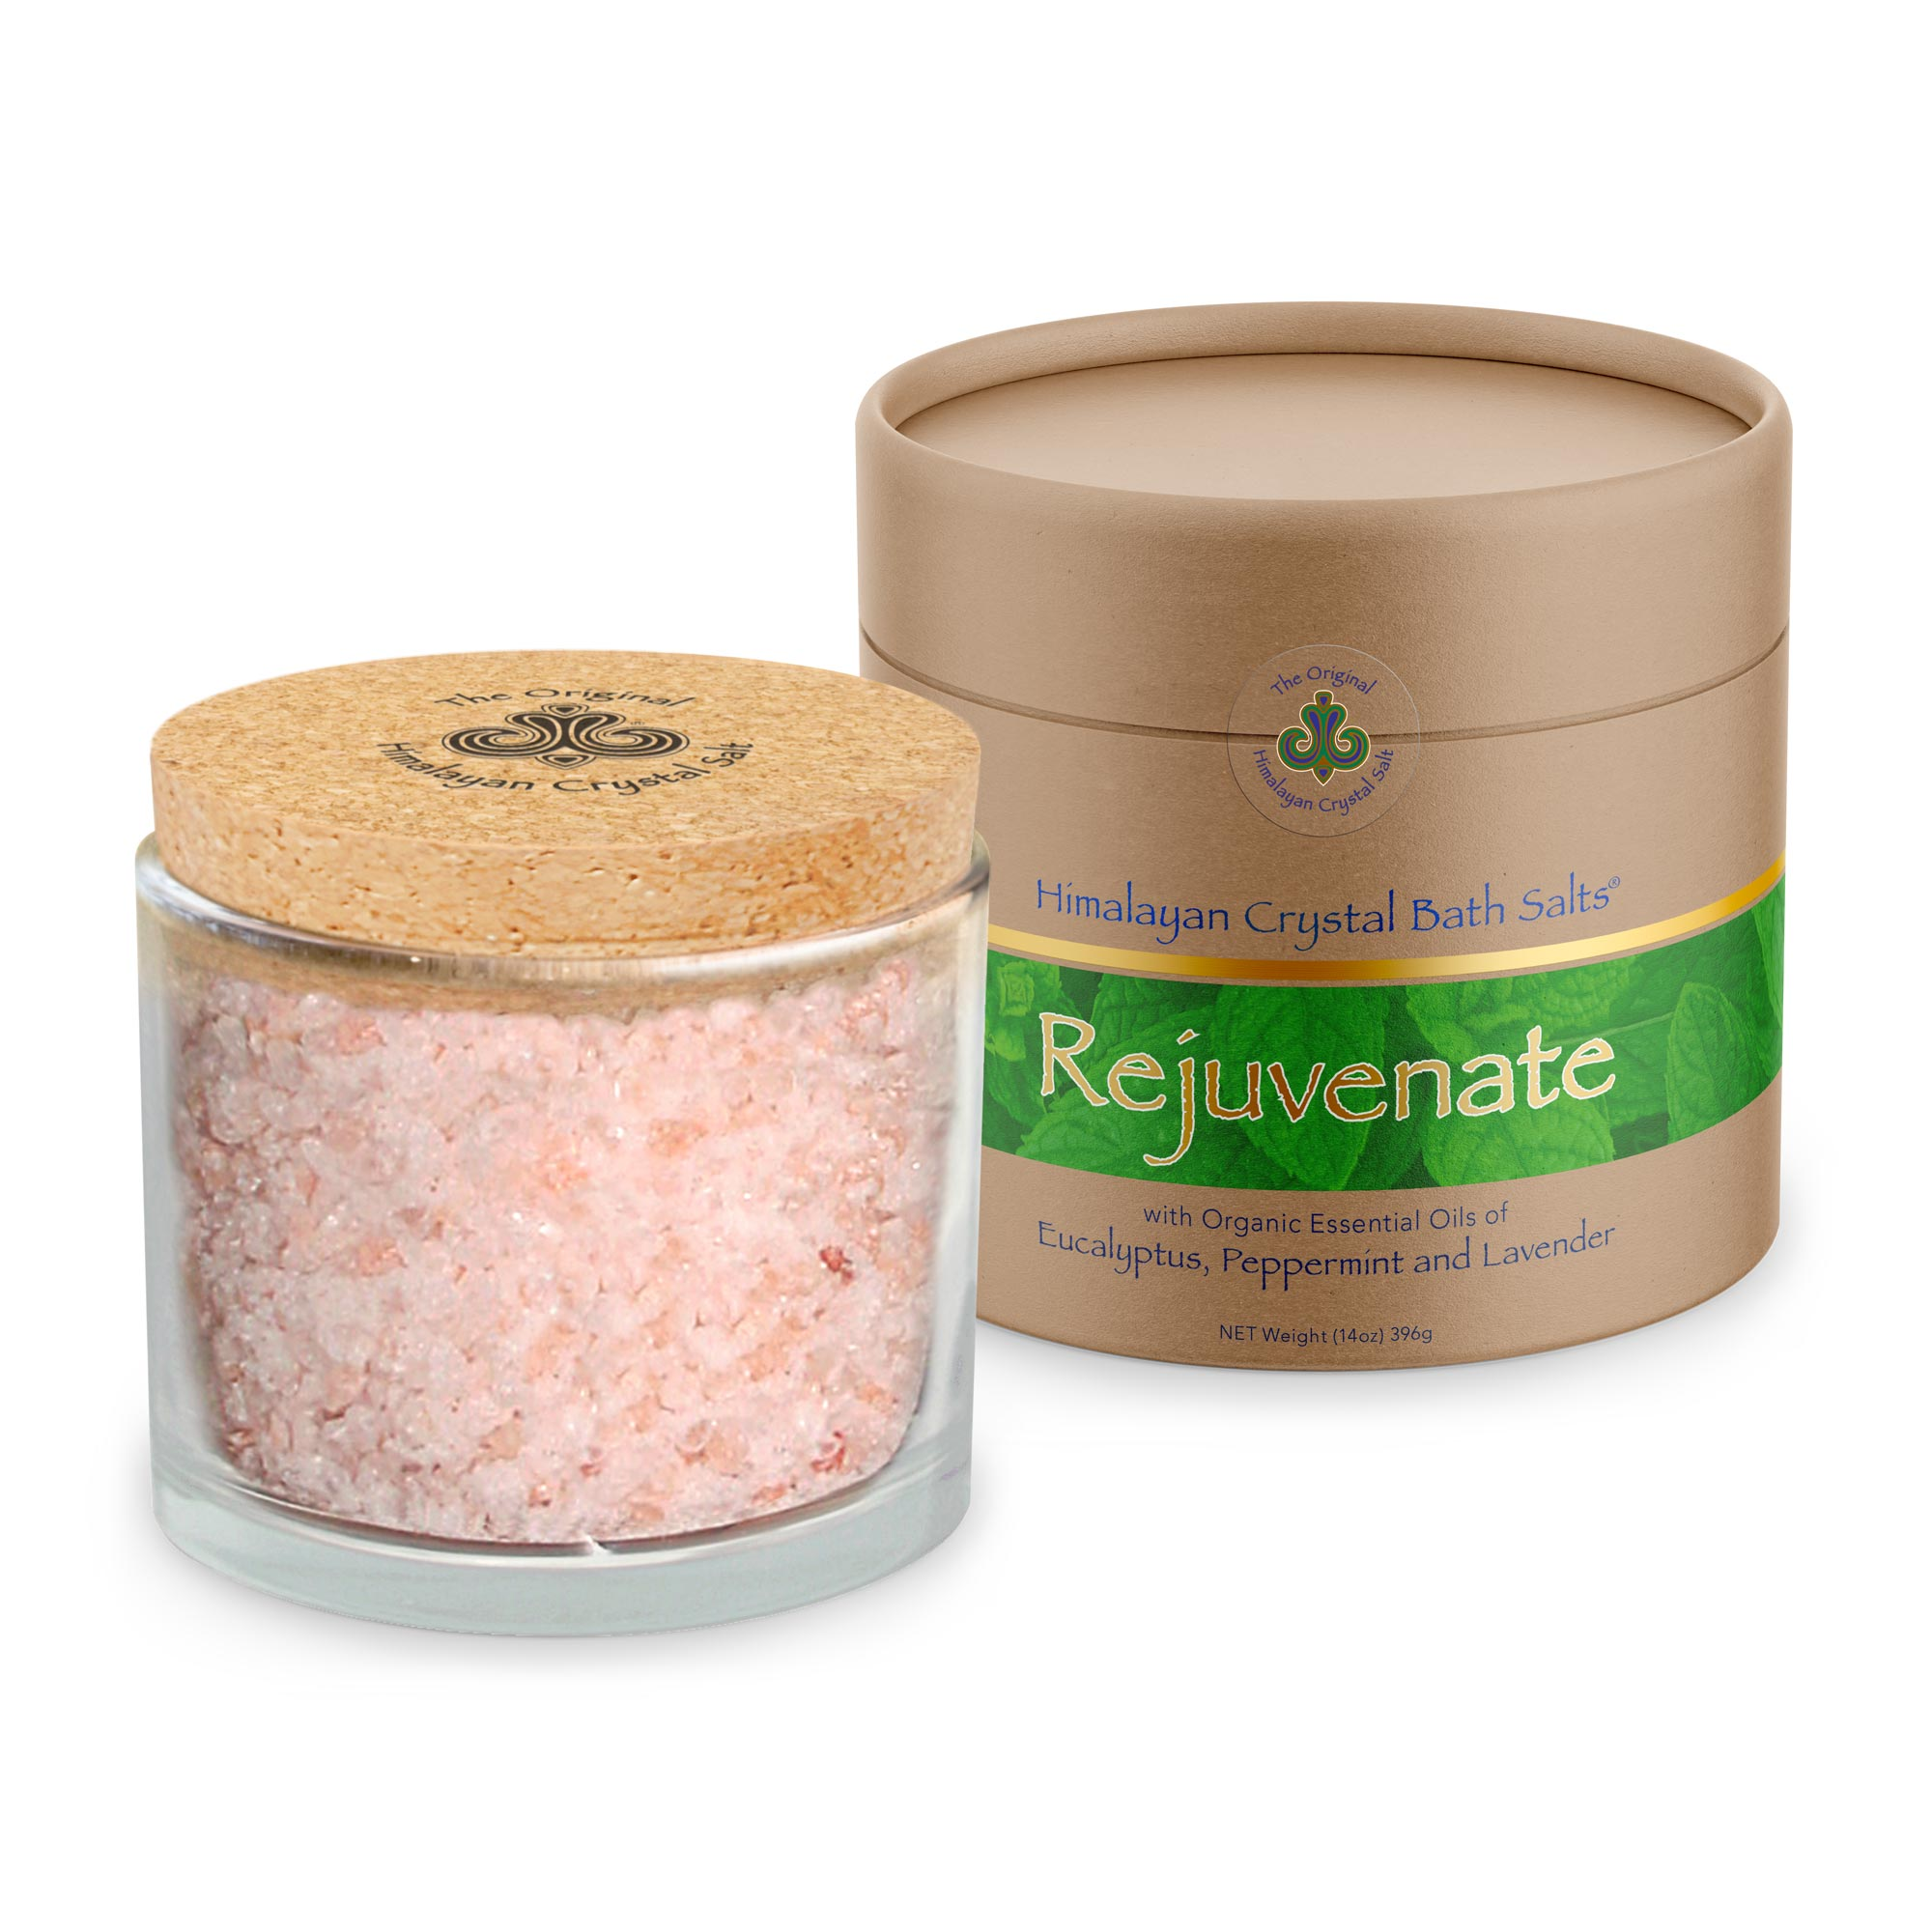 Rejuvenate with this pure bath salt blend of 100% organic eucalyptus, peppermint, and lavender essential oils.  This renewing scent helps soothe tight muscles, ease tension, and provides a deeply invigorating experience.